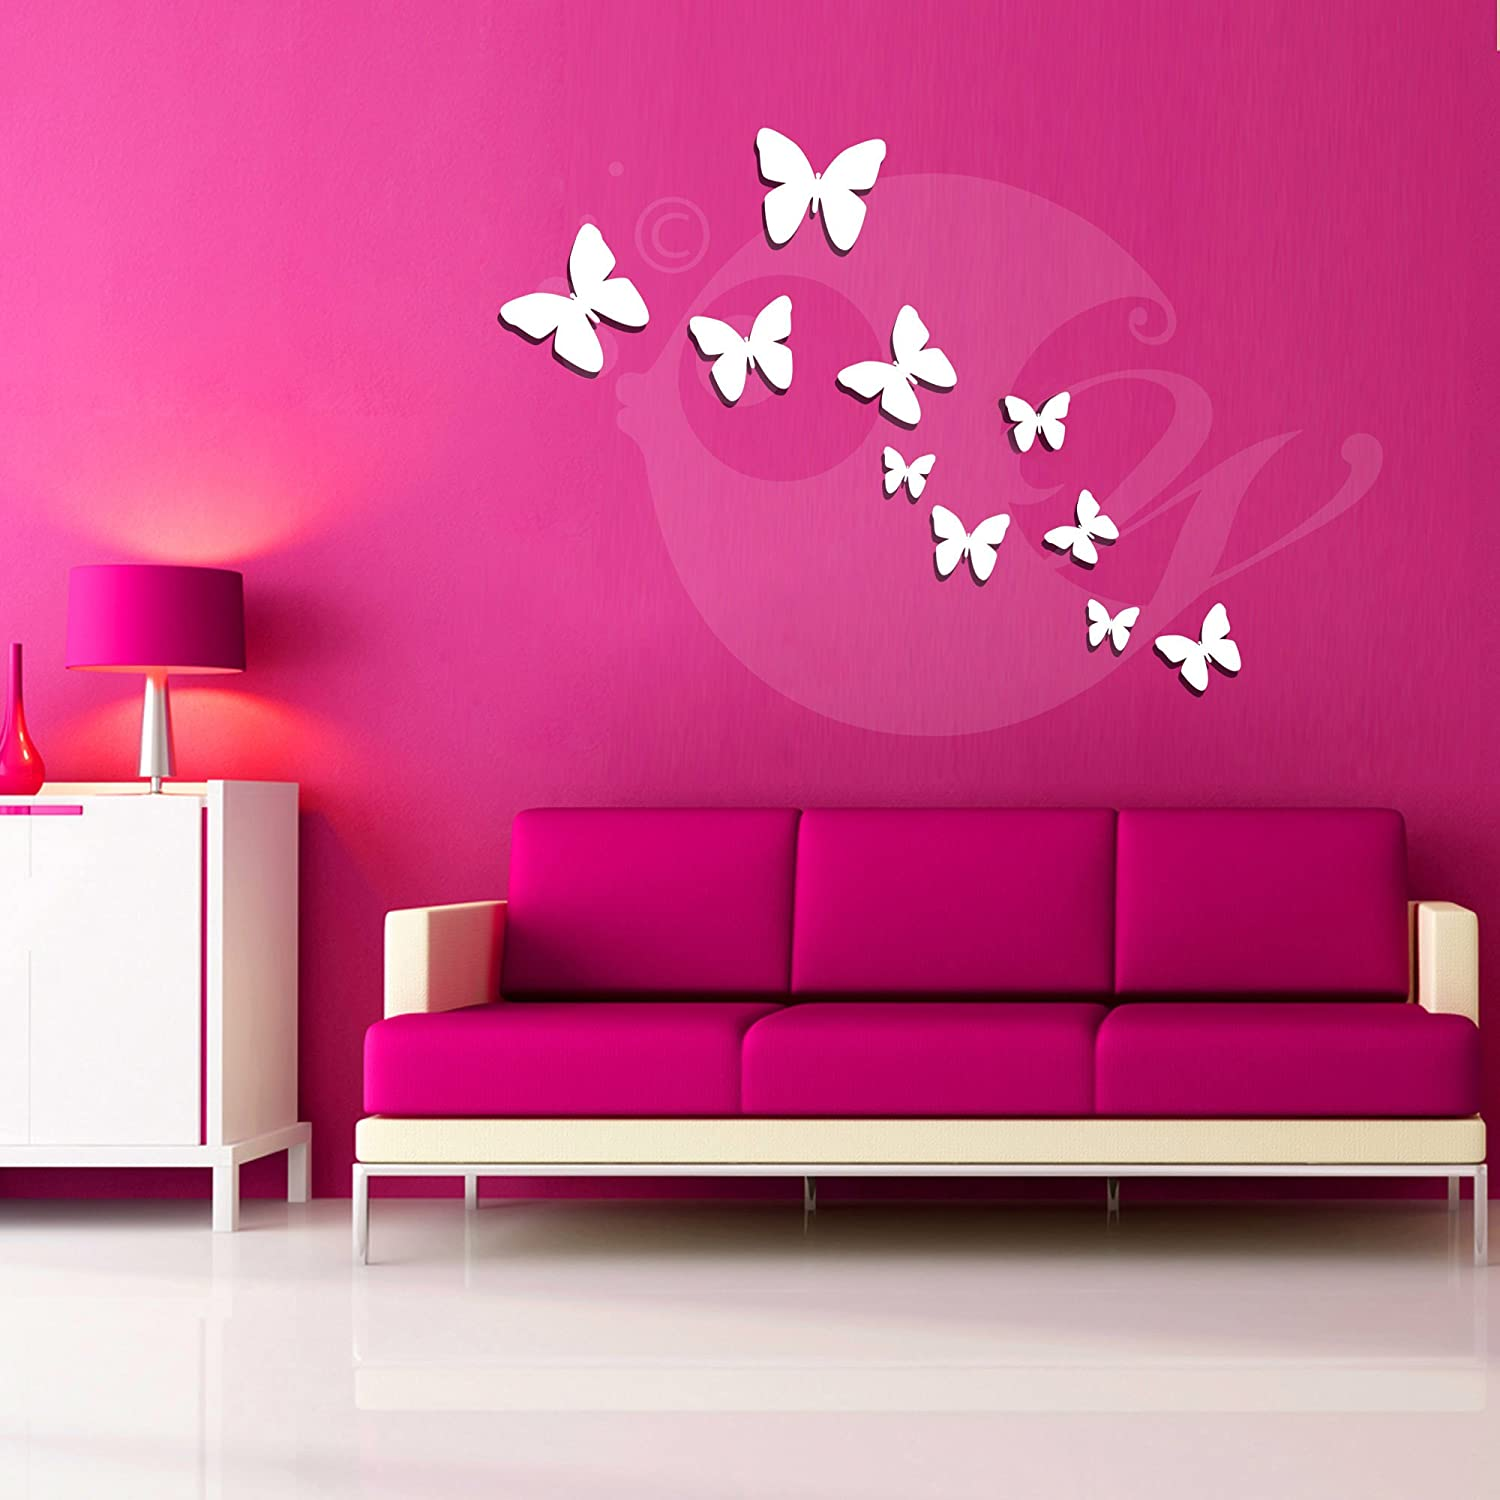 Buy Butterflies Acrylic 3D Wall Art Sticker 10 Pieces Online At Low Prices In India